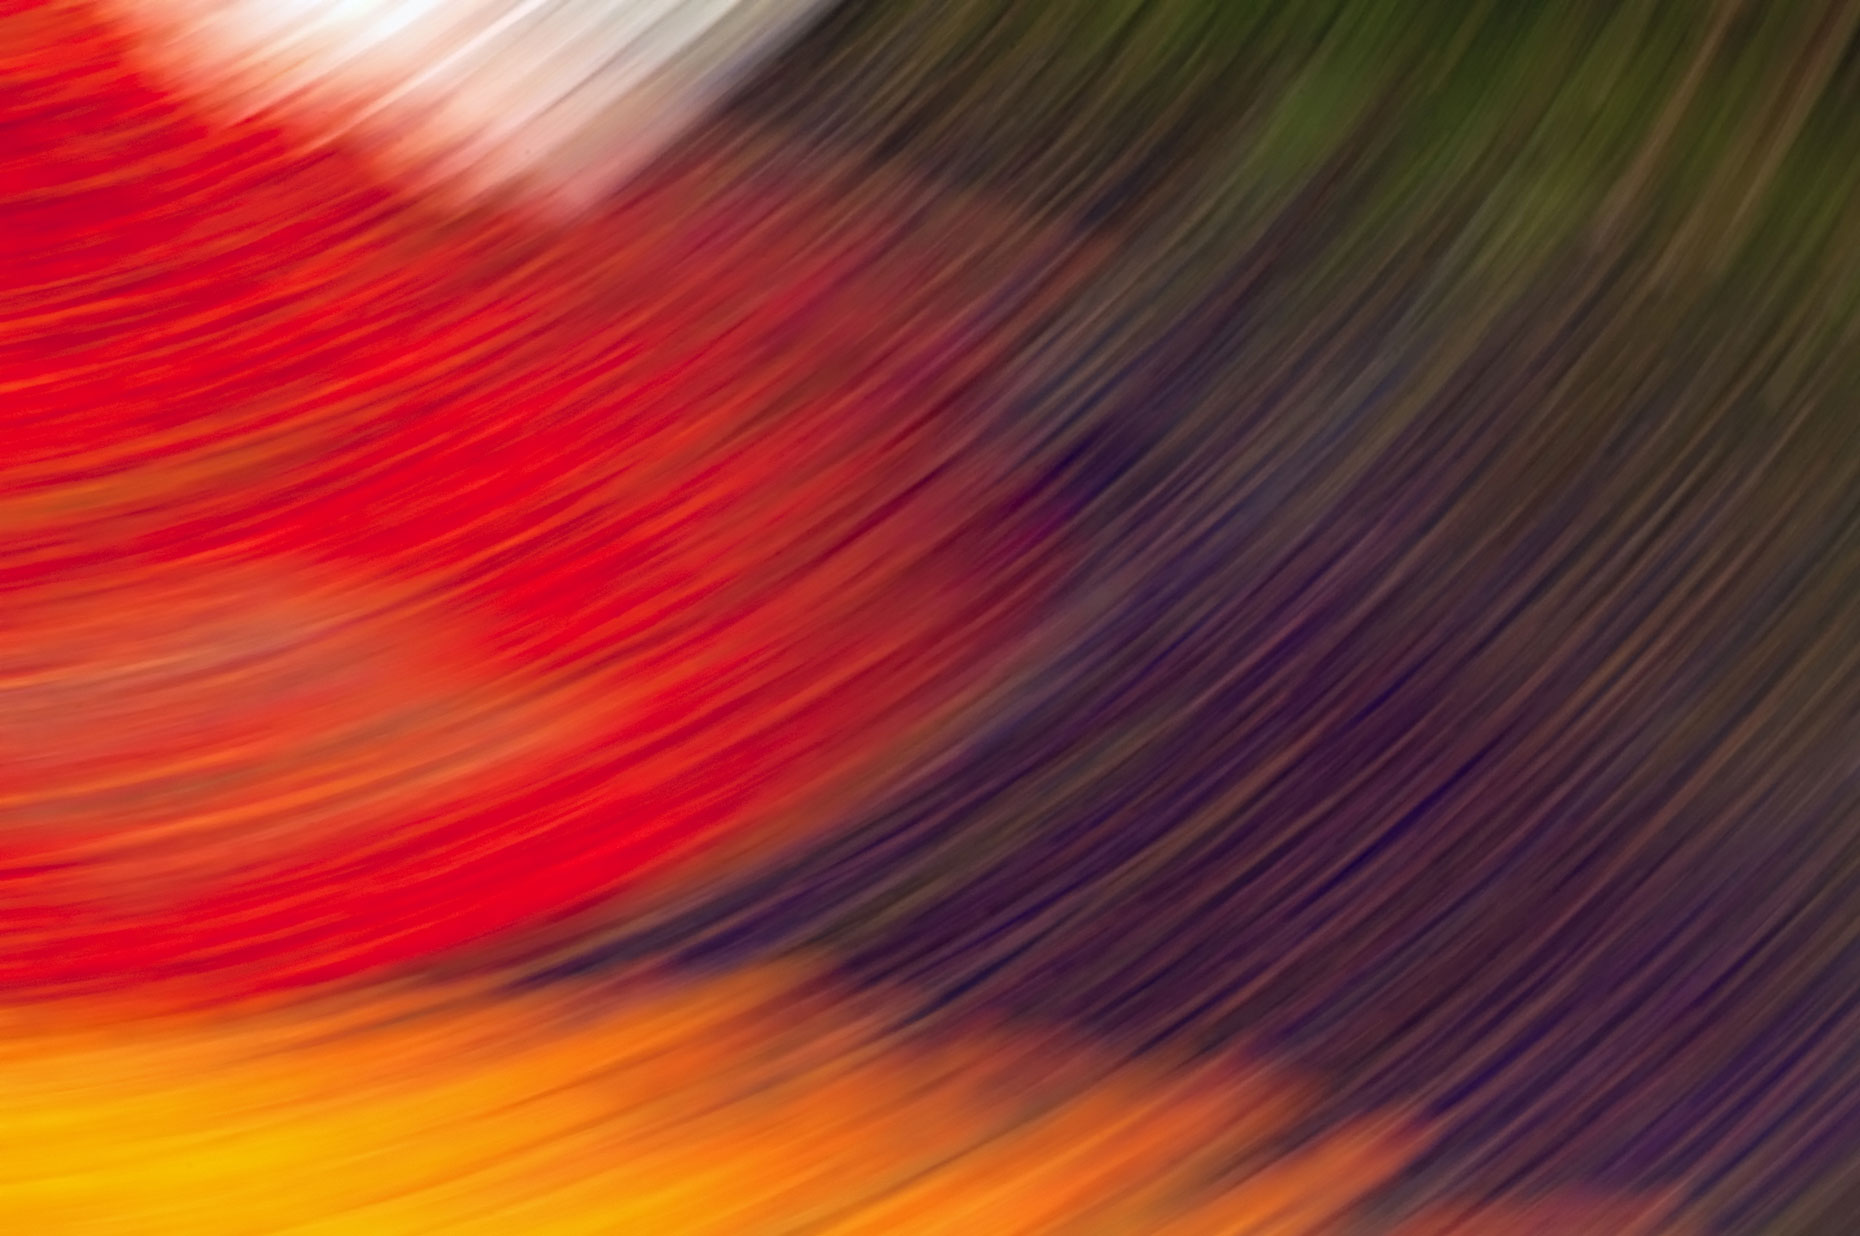 Abstract-Art-Red-Colorful-Eden-Laria-Saunders.jpg